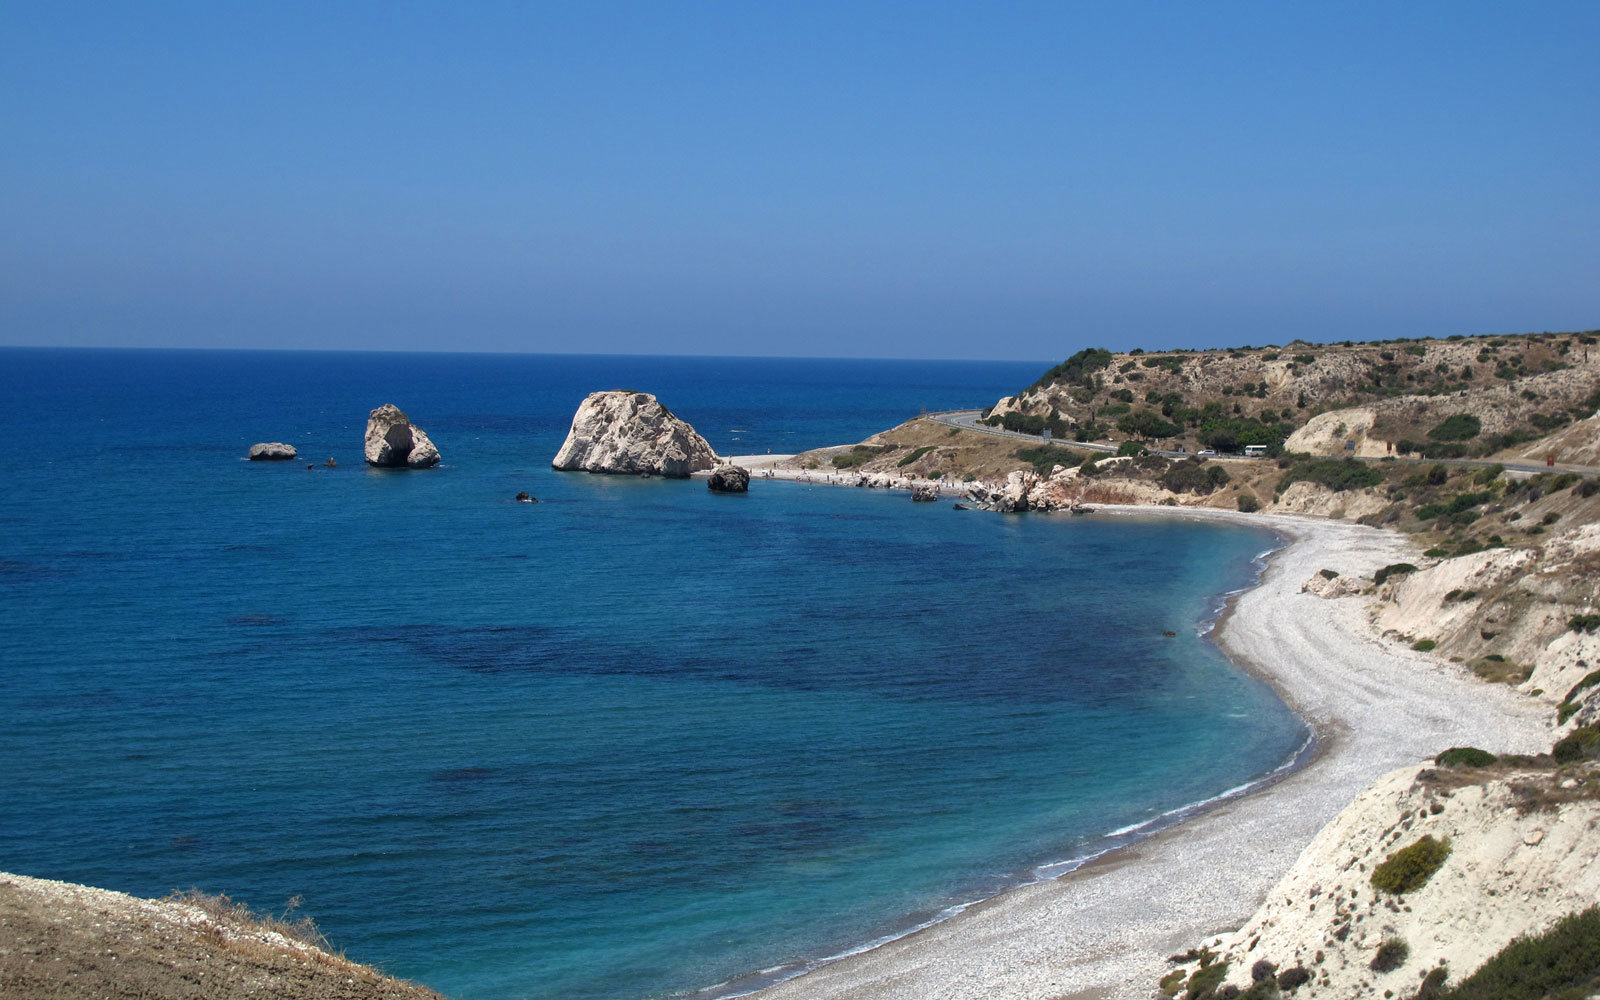 The coast of Cyprus.